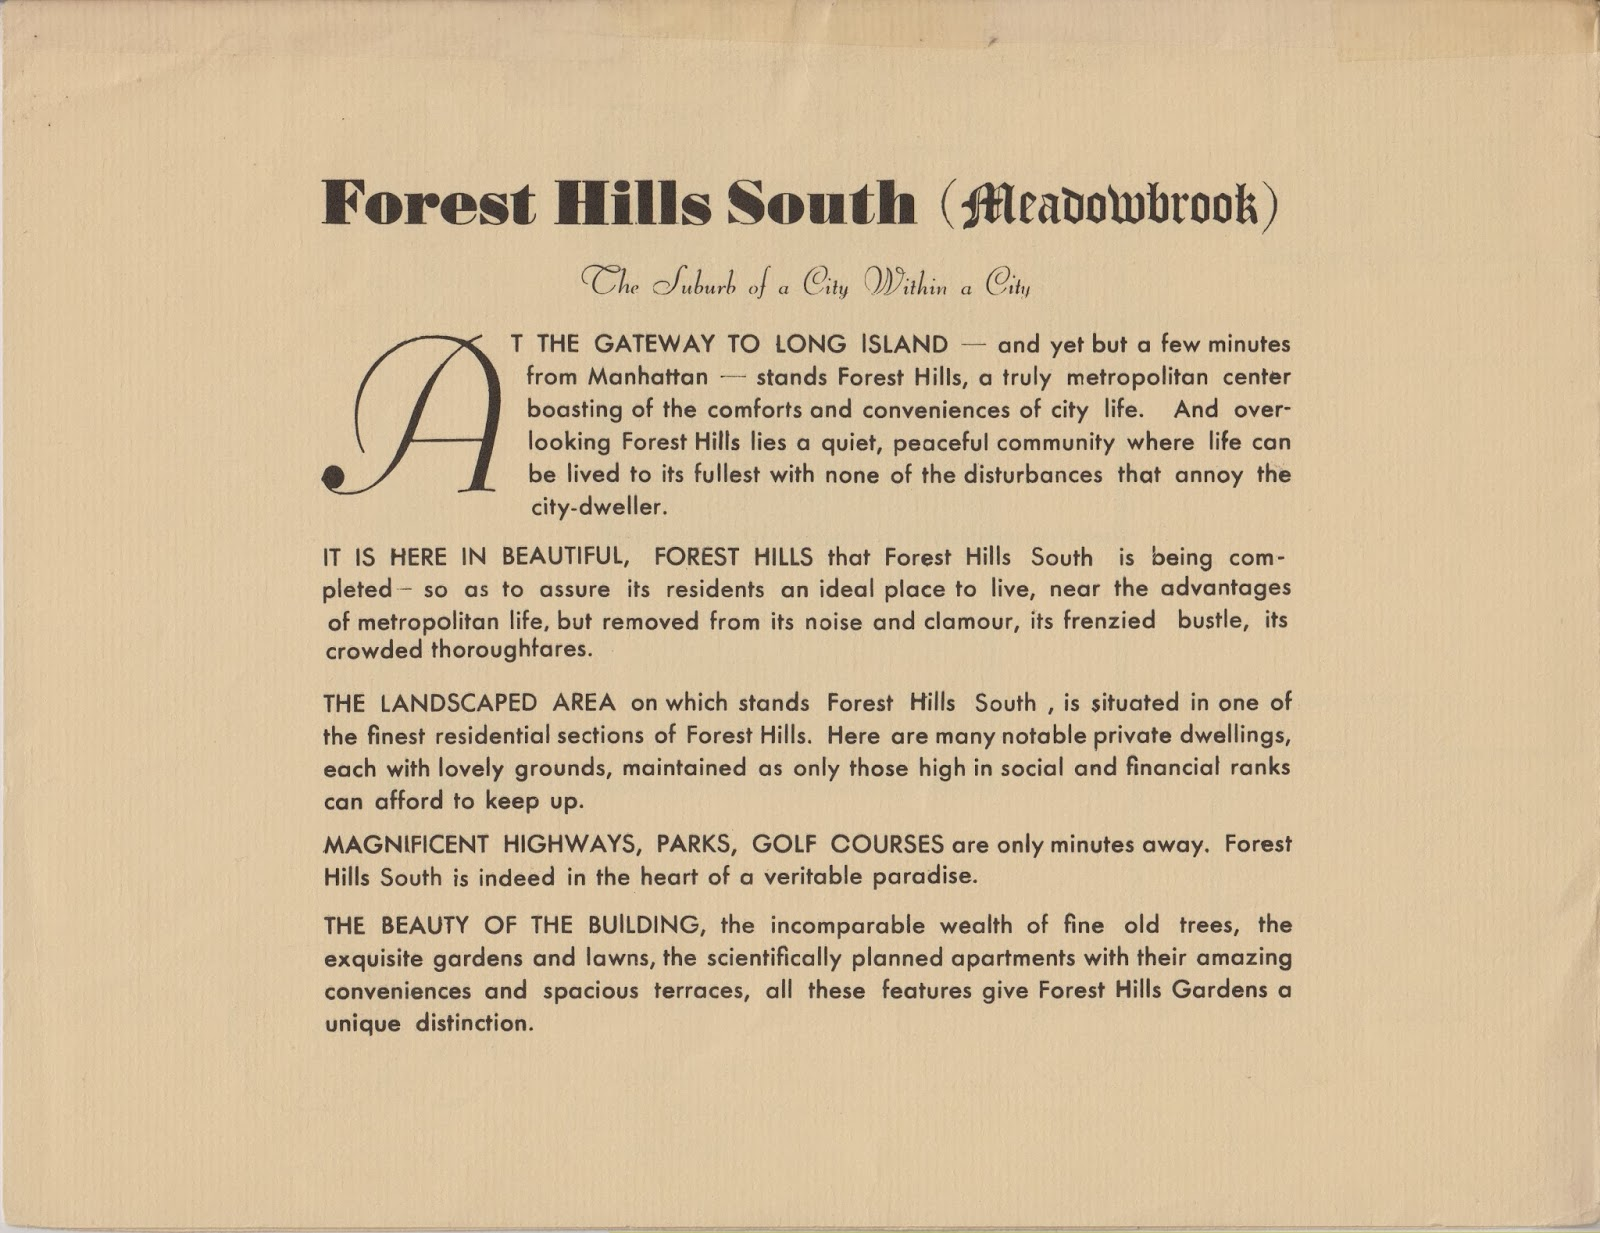 rego forest preservation council  forest hills south prospectus from 1941